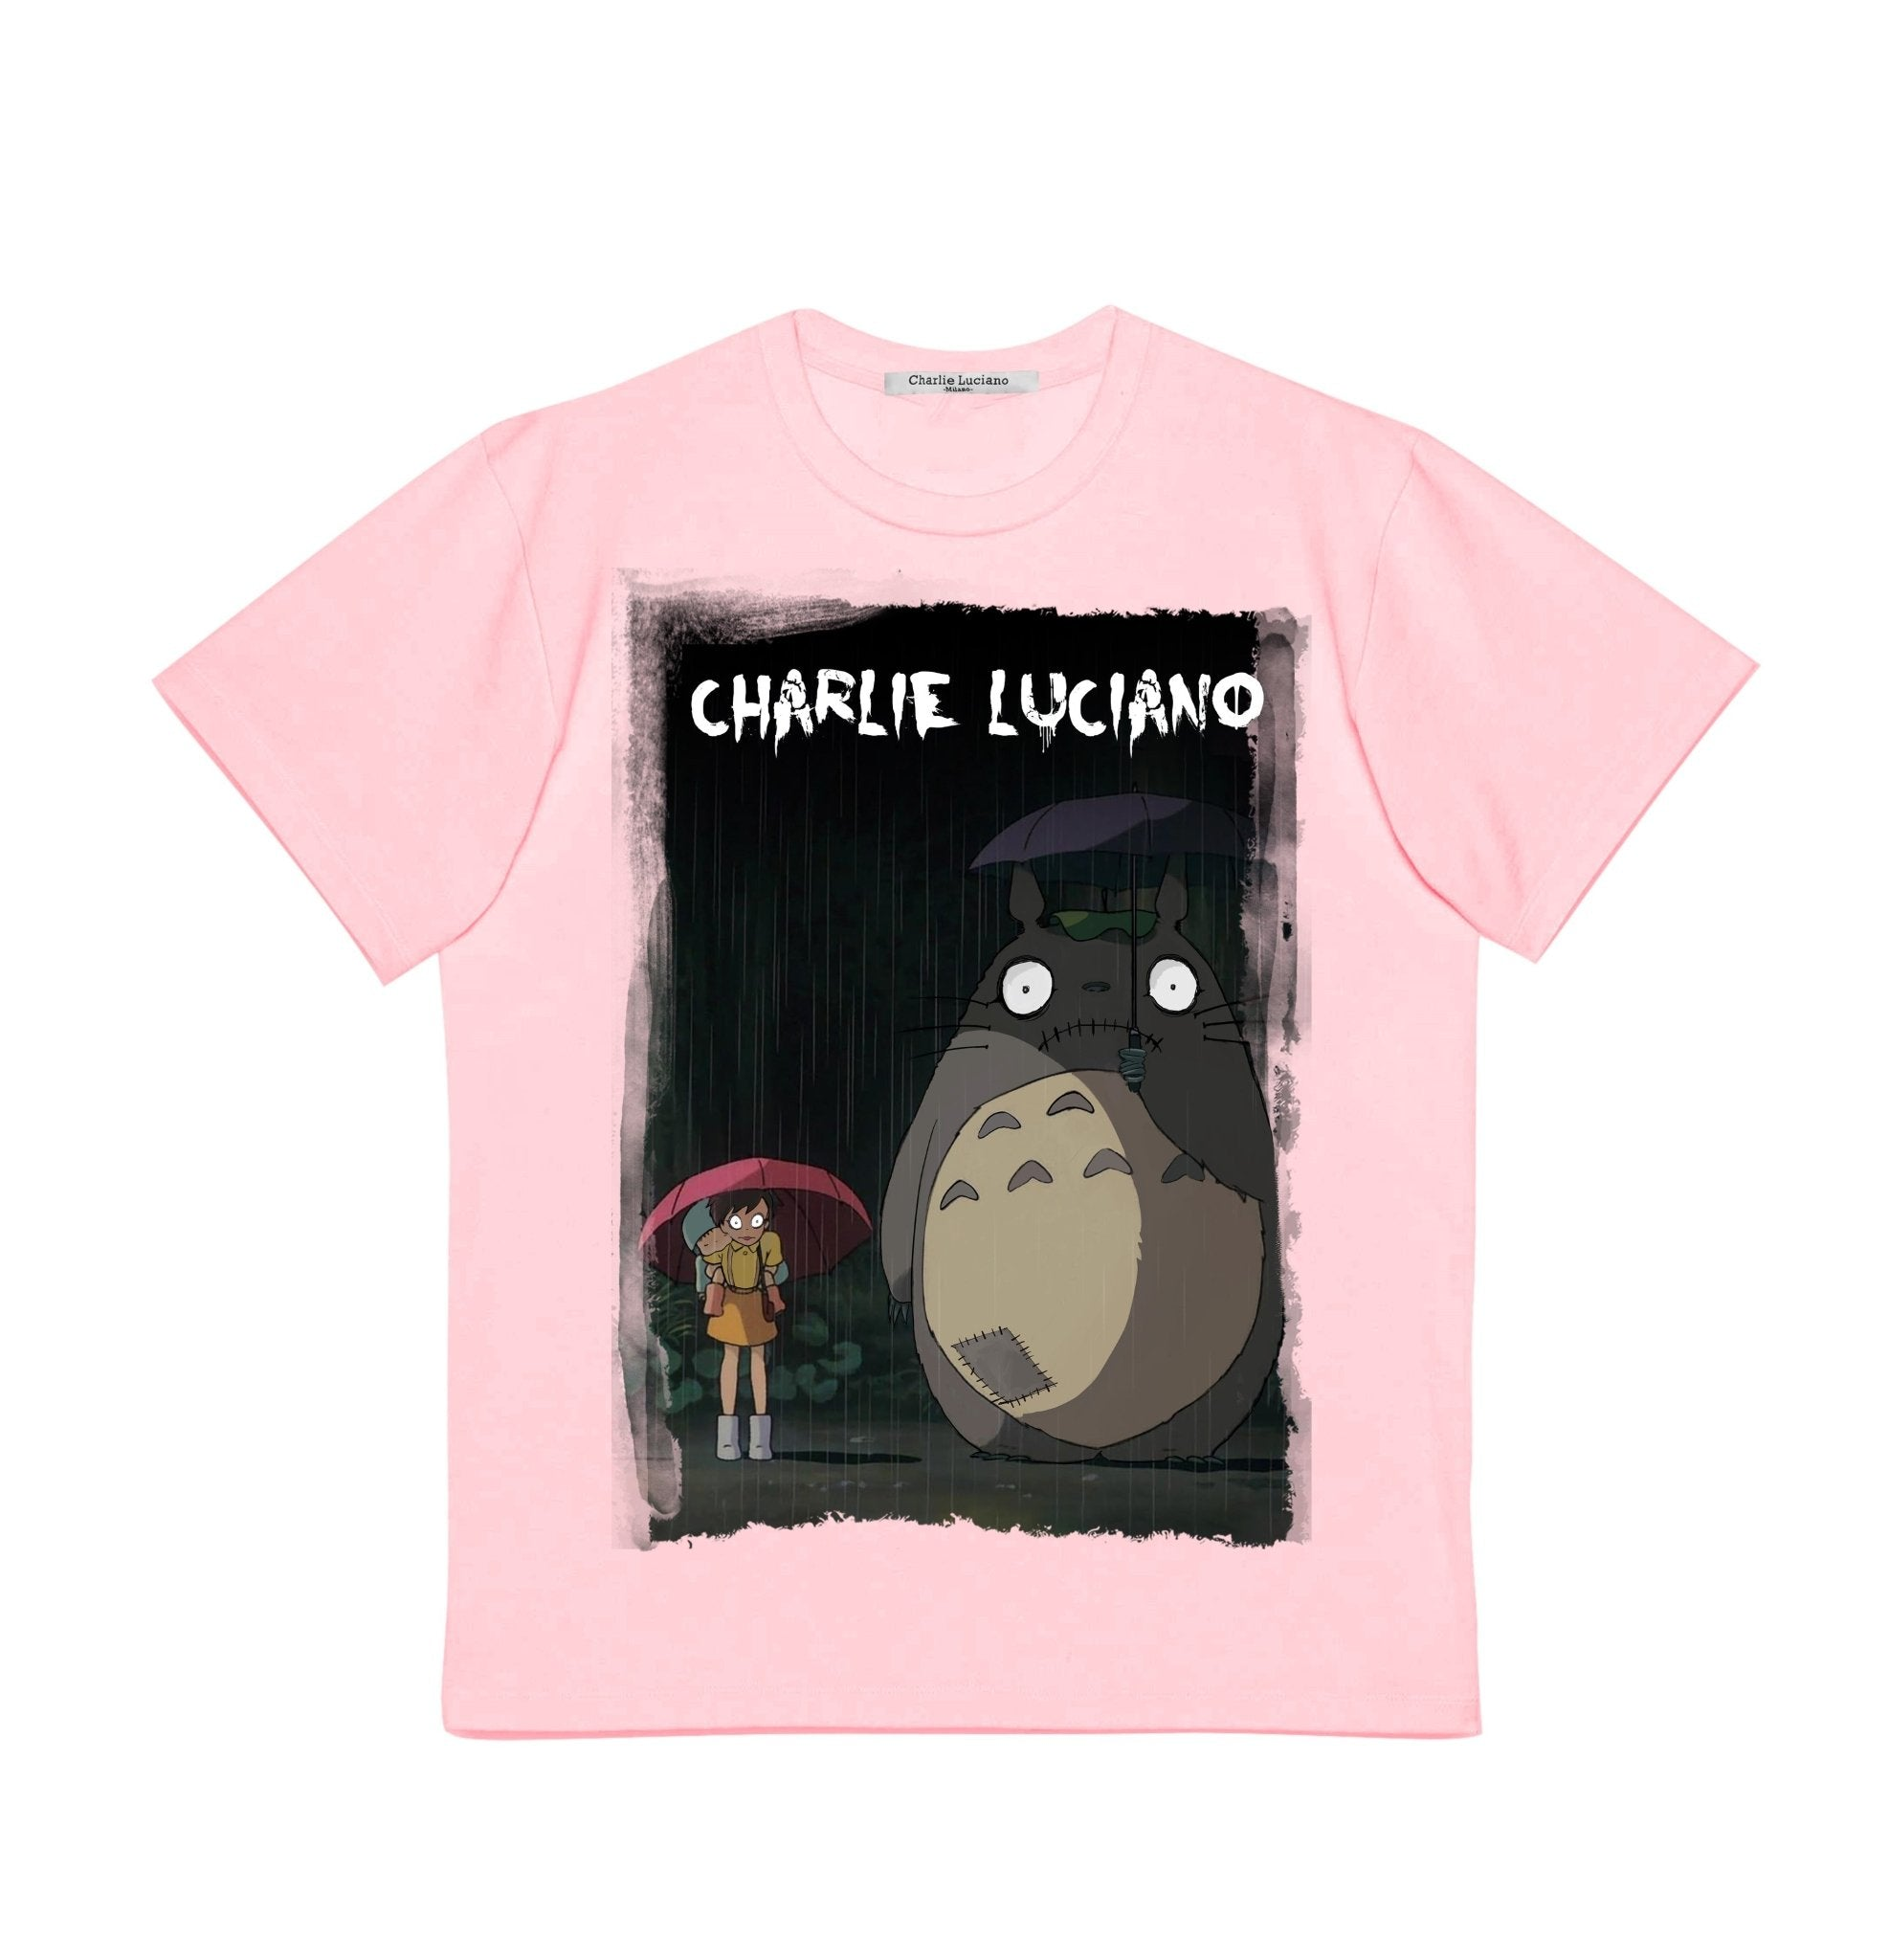 CHARLIE LUCIANO 'Totoro' T-shirt | MADA IN CHINA